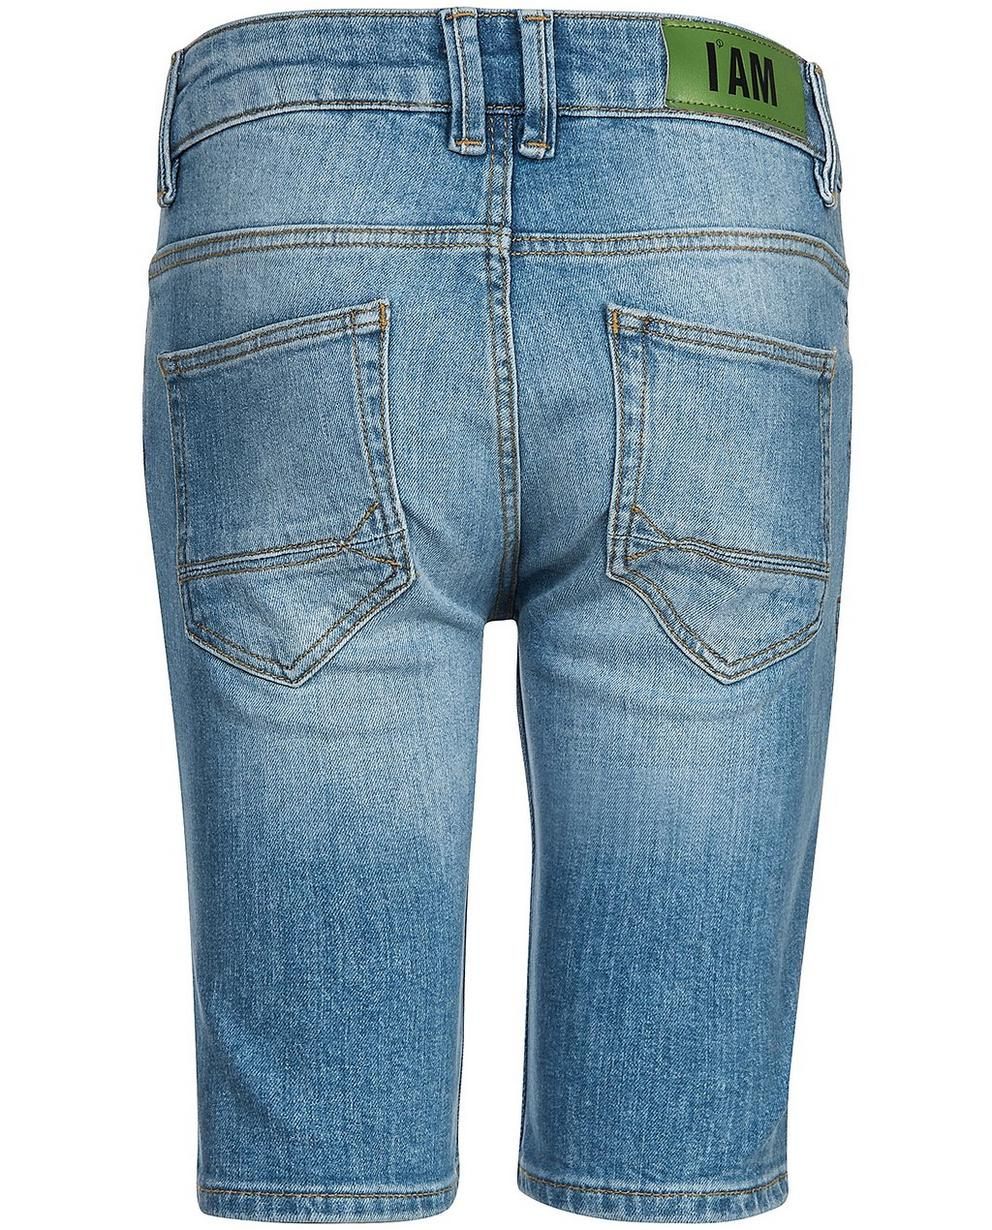 Shorts - Aqua - Recycelte Denim-Shorts